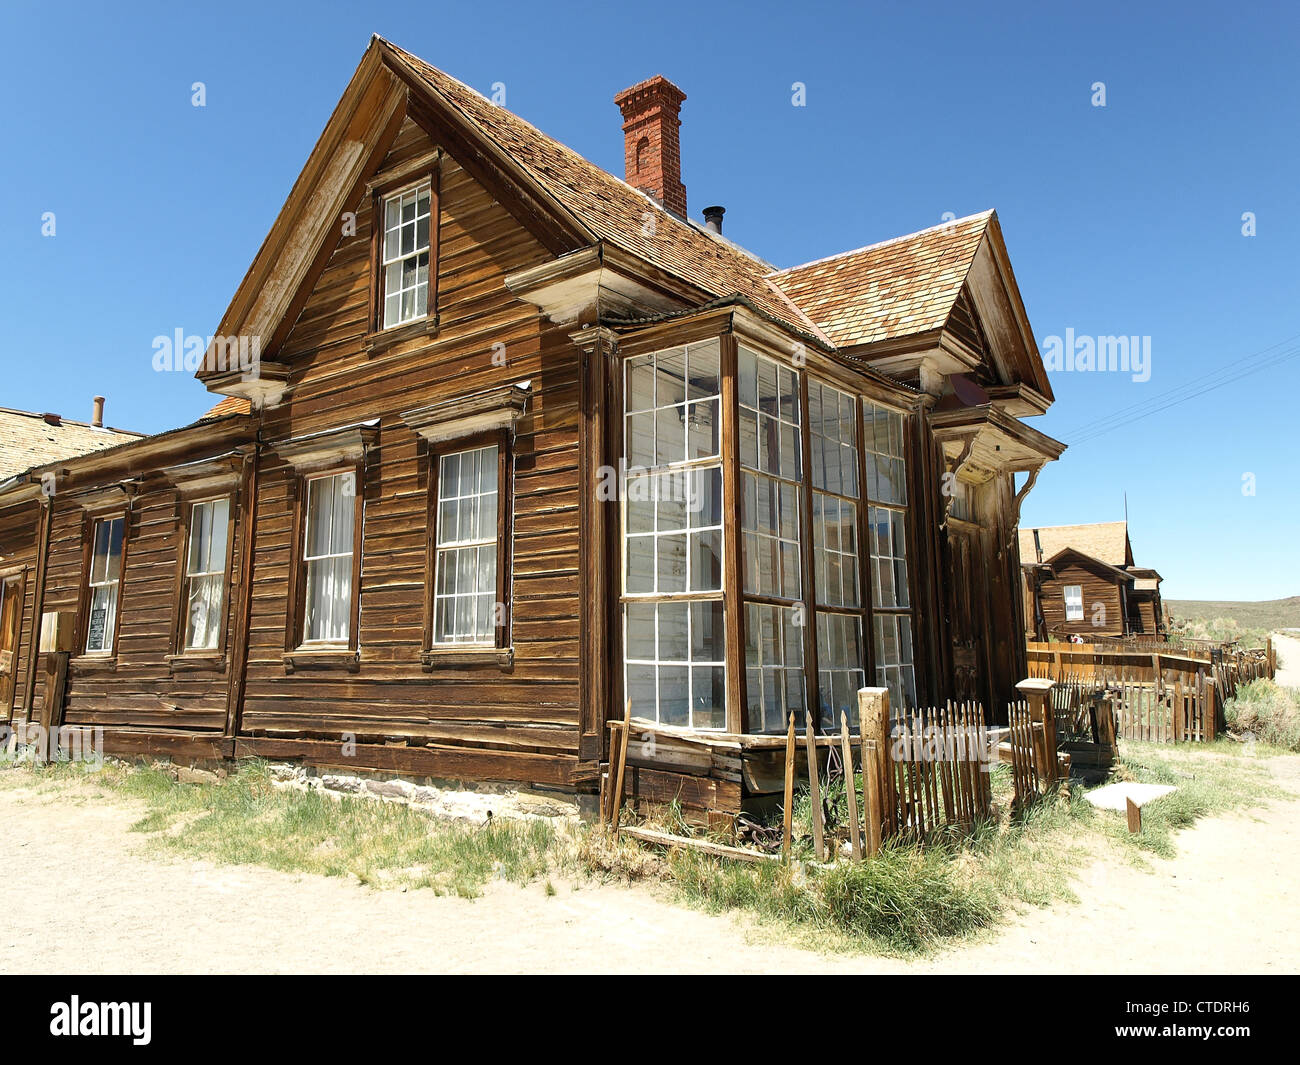 An old house in Bodie, a ghost town in California, United States. - Stock Image